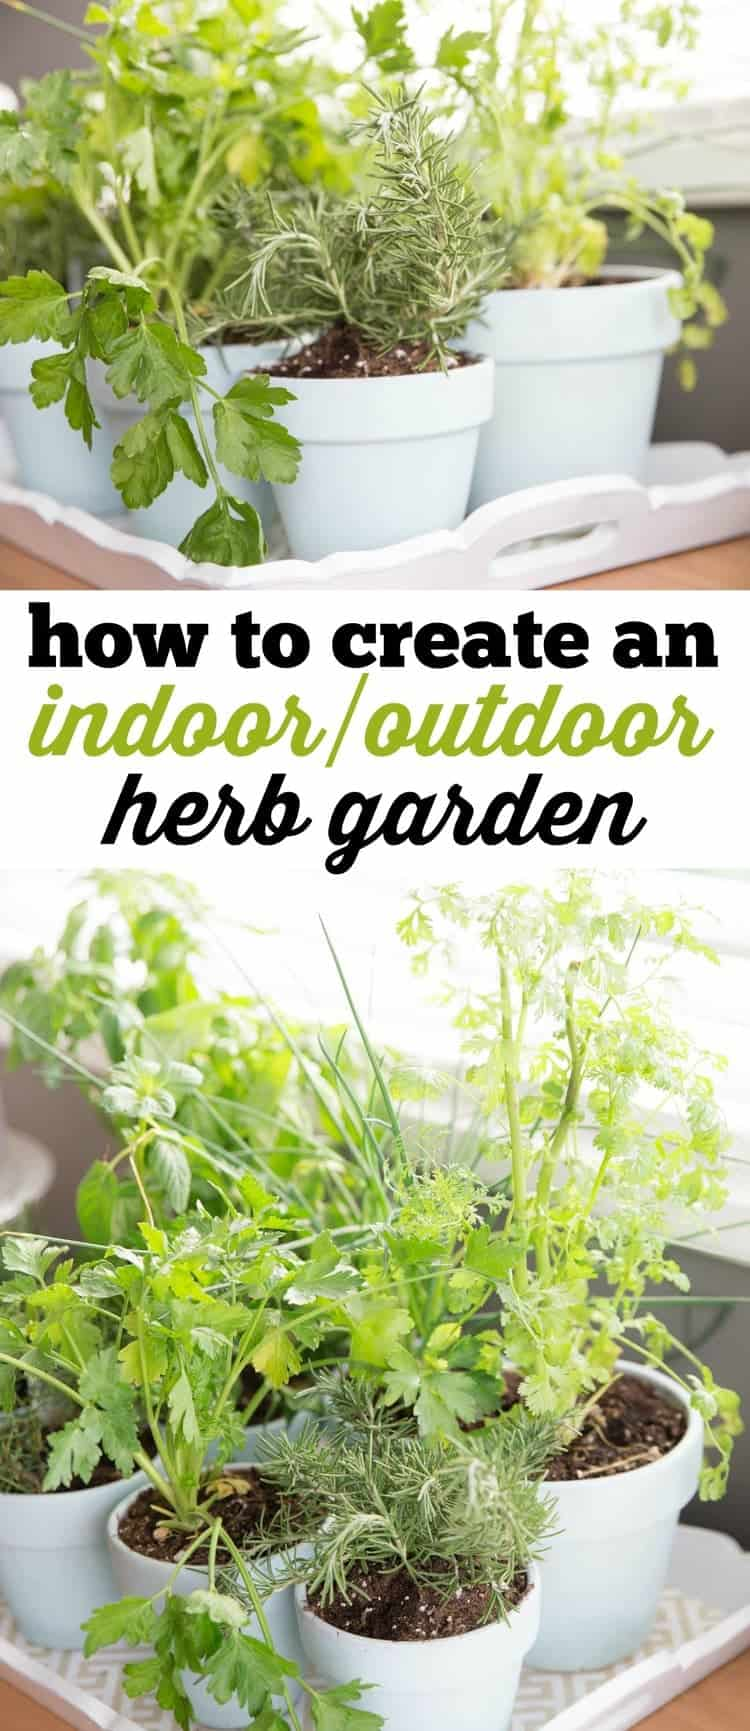 This indoor/outdoor herb garden is perfect all year long and will help you to achieve the best fresh herbs for your homemade meals, adding a ton of flavor and pizzazz.